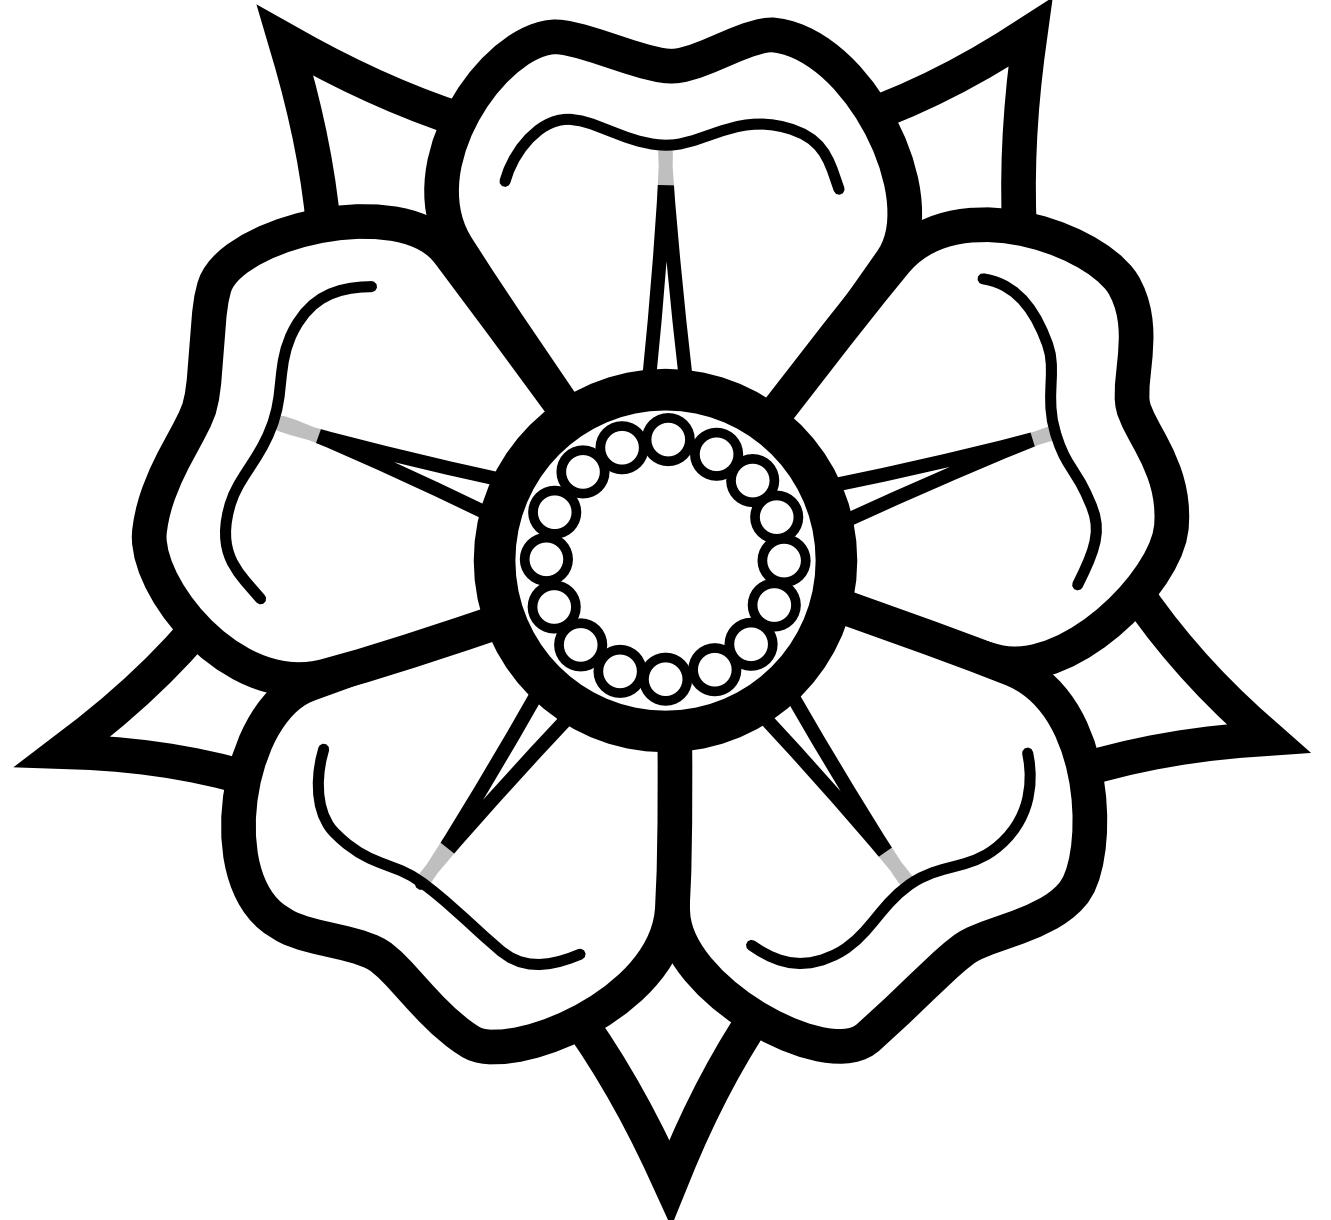 Rose flower clipart black and white png free stock Heraldisch Lippische Rose Black White Line Art Tattoo Tatoo Flower ... png free stock